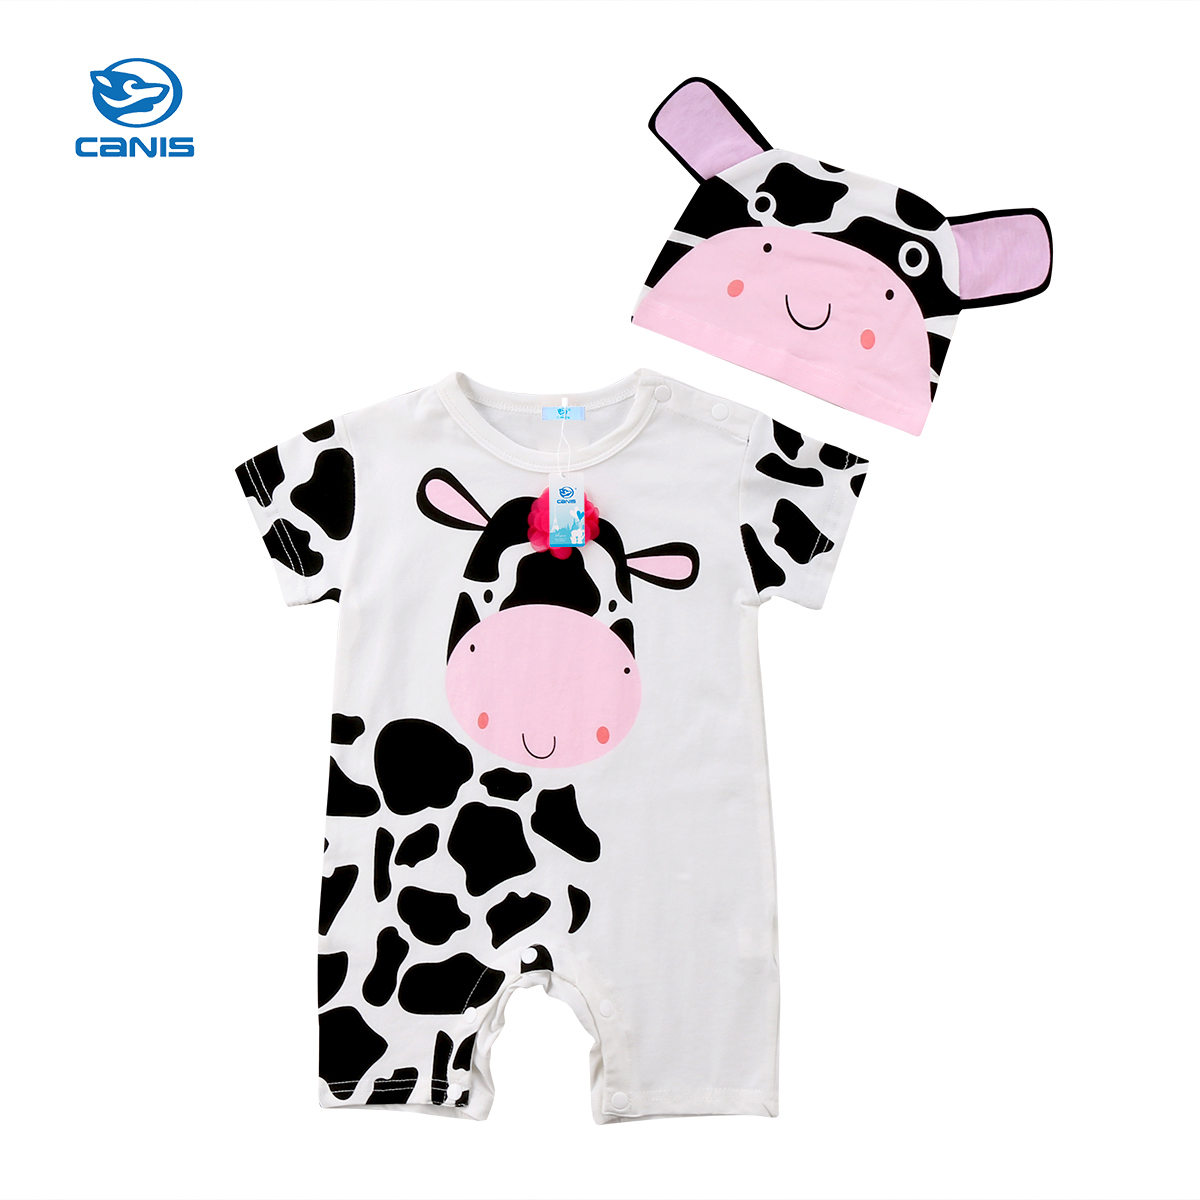 CANIS 2Pcs Lovely Baby Clothing Newborn Infant Baby Girl Boy Romper 3D Cows Short Sleeve ...